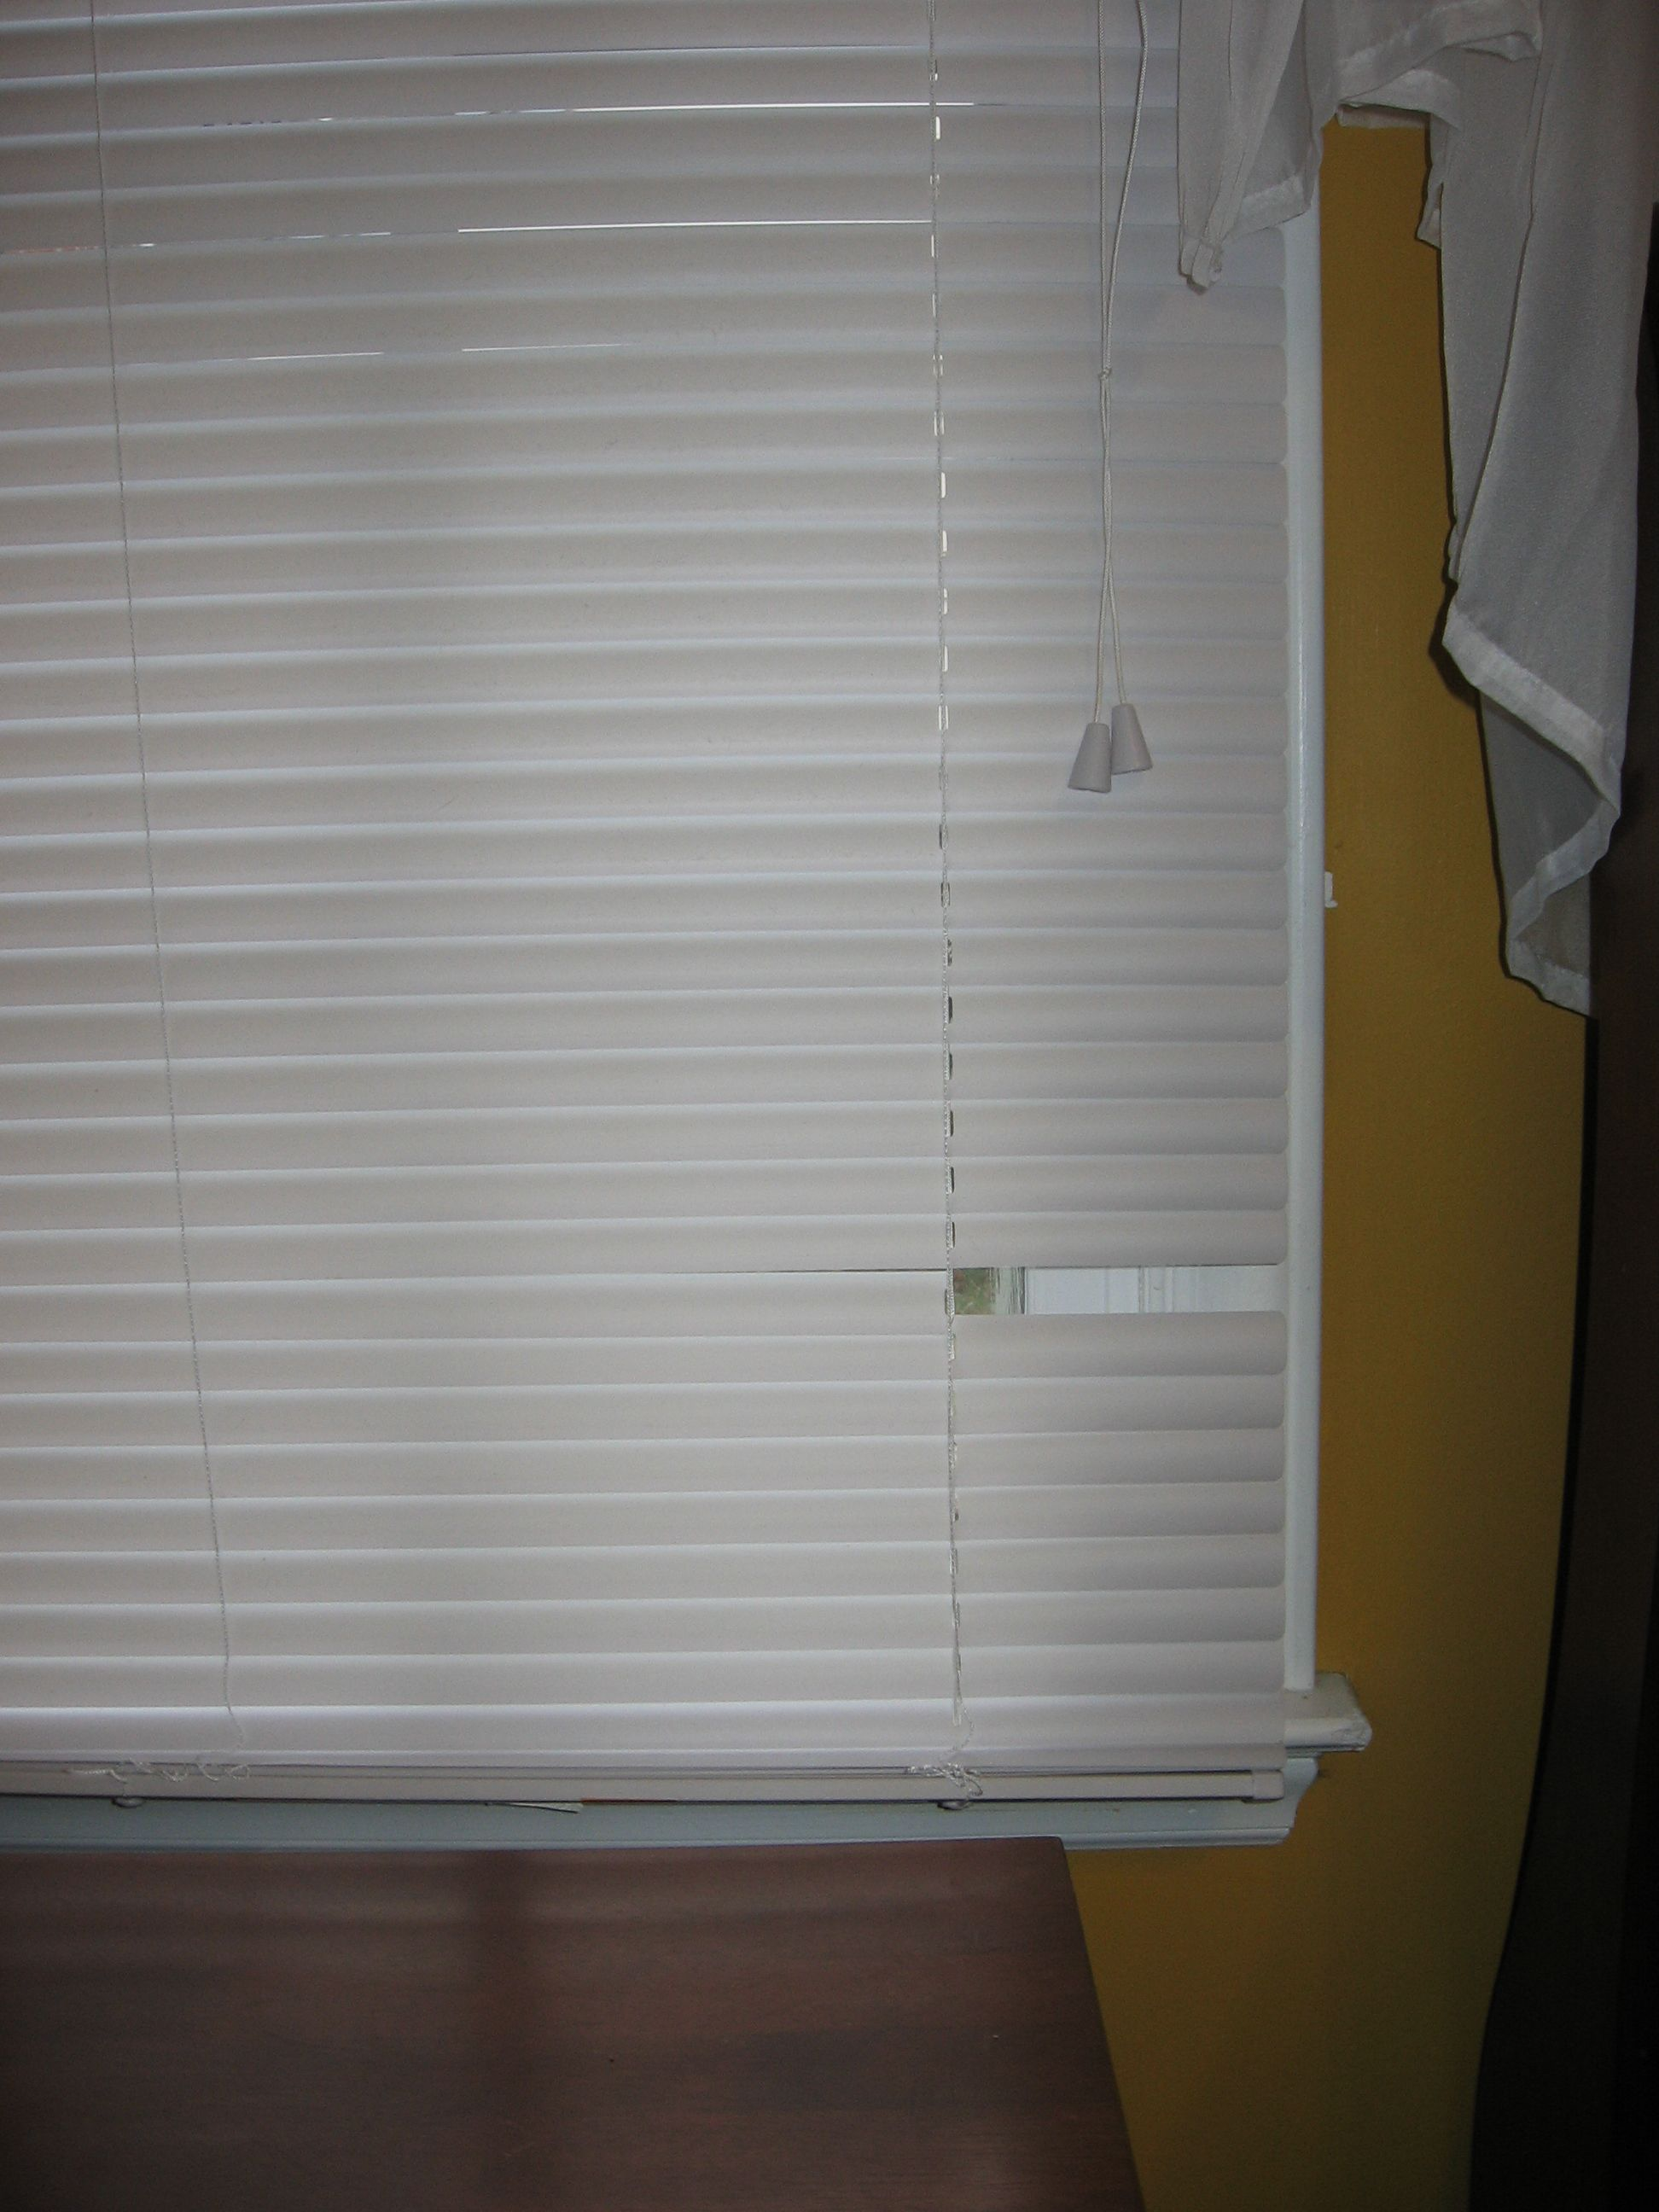 How To Fix Broken Slats On Vinyl Mini Blinds Vinyl Mini Blinds Mini Blinds How To Fix Blinds